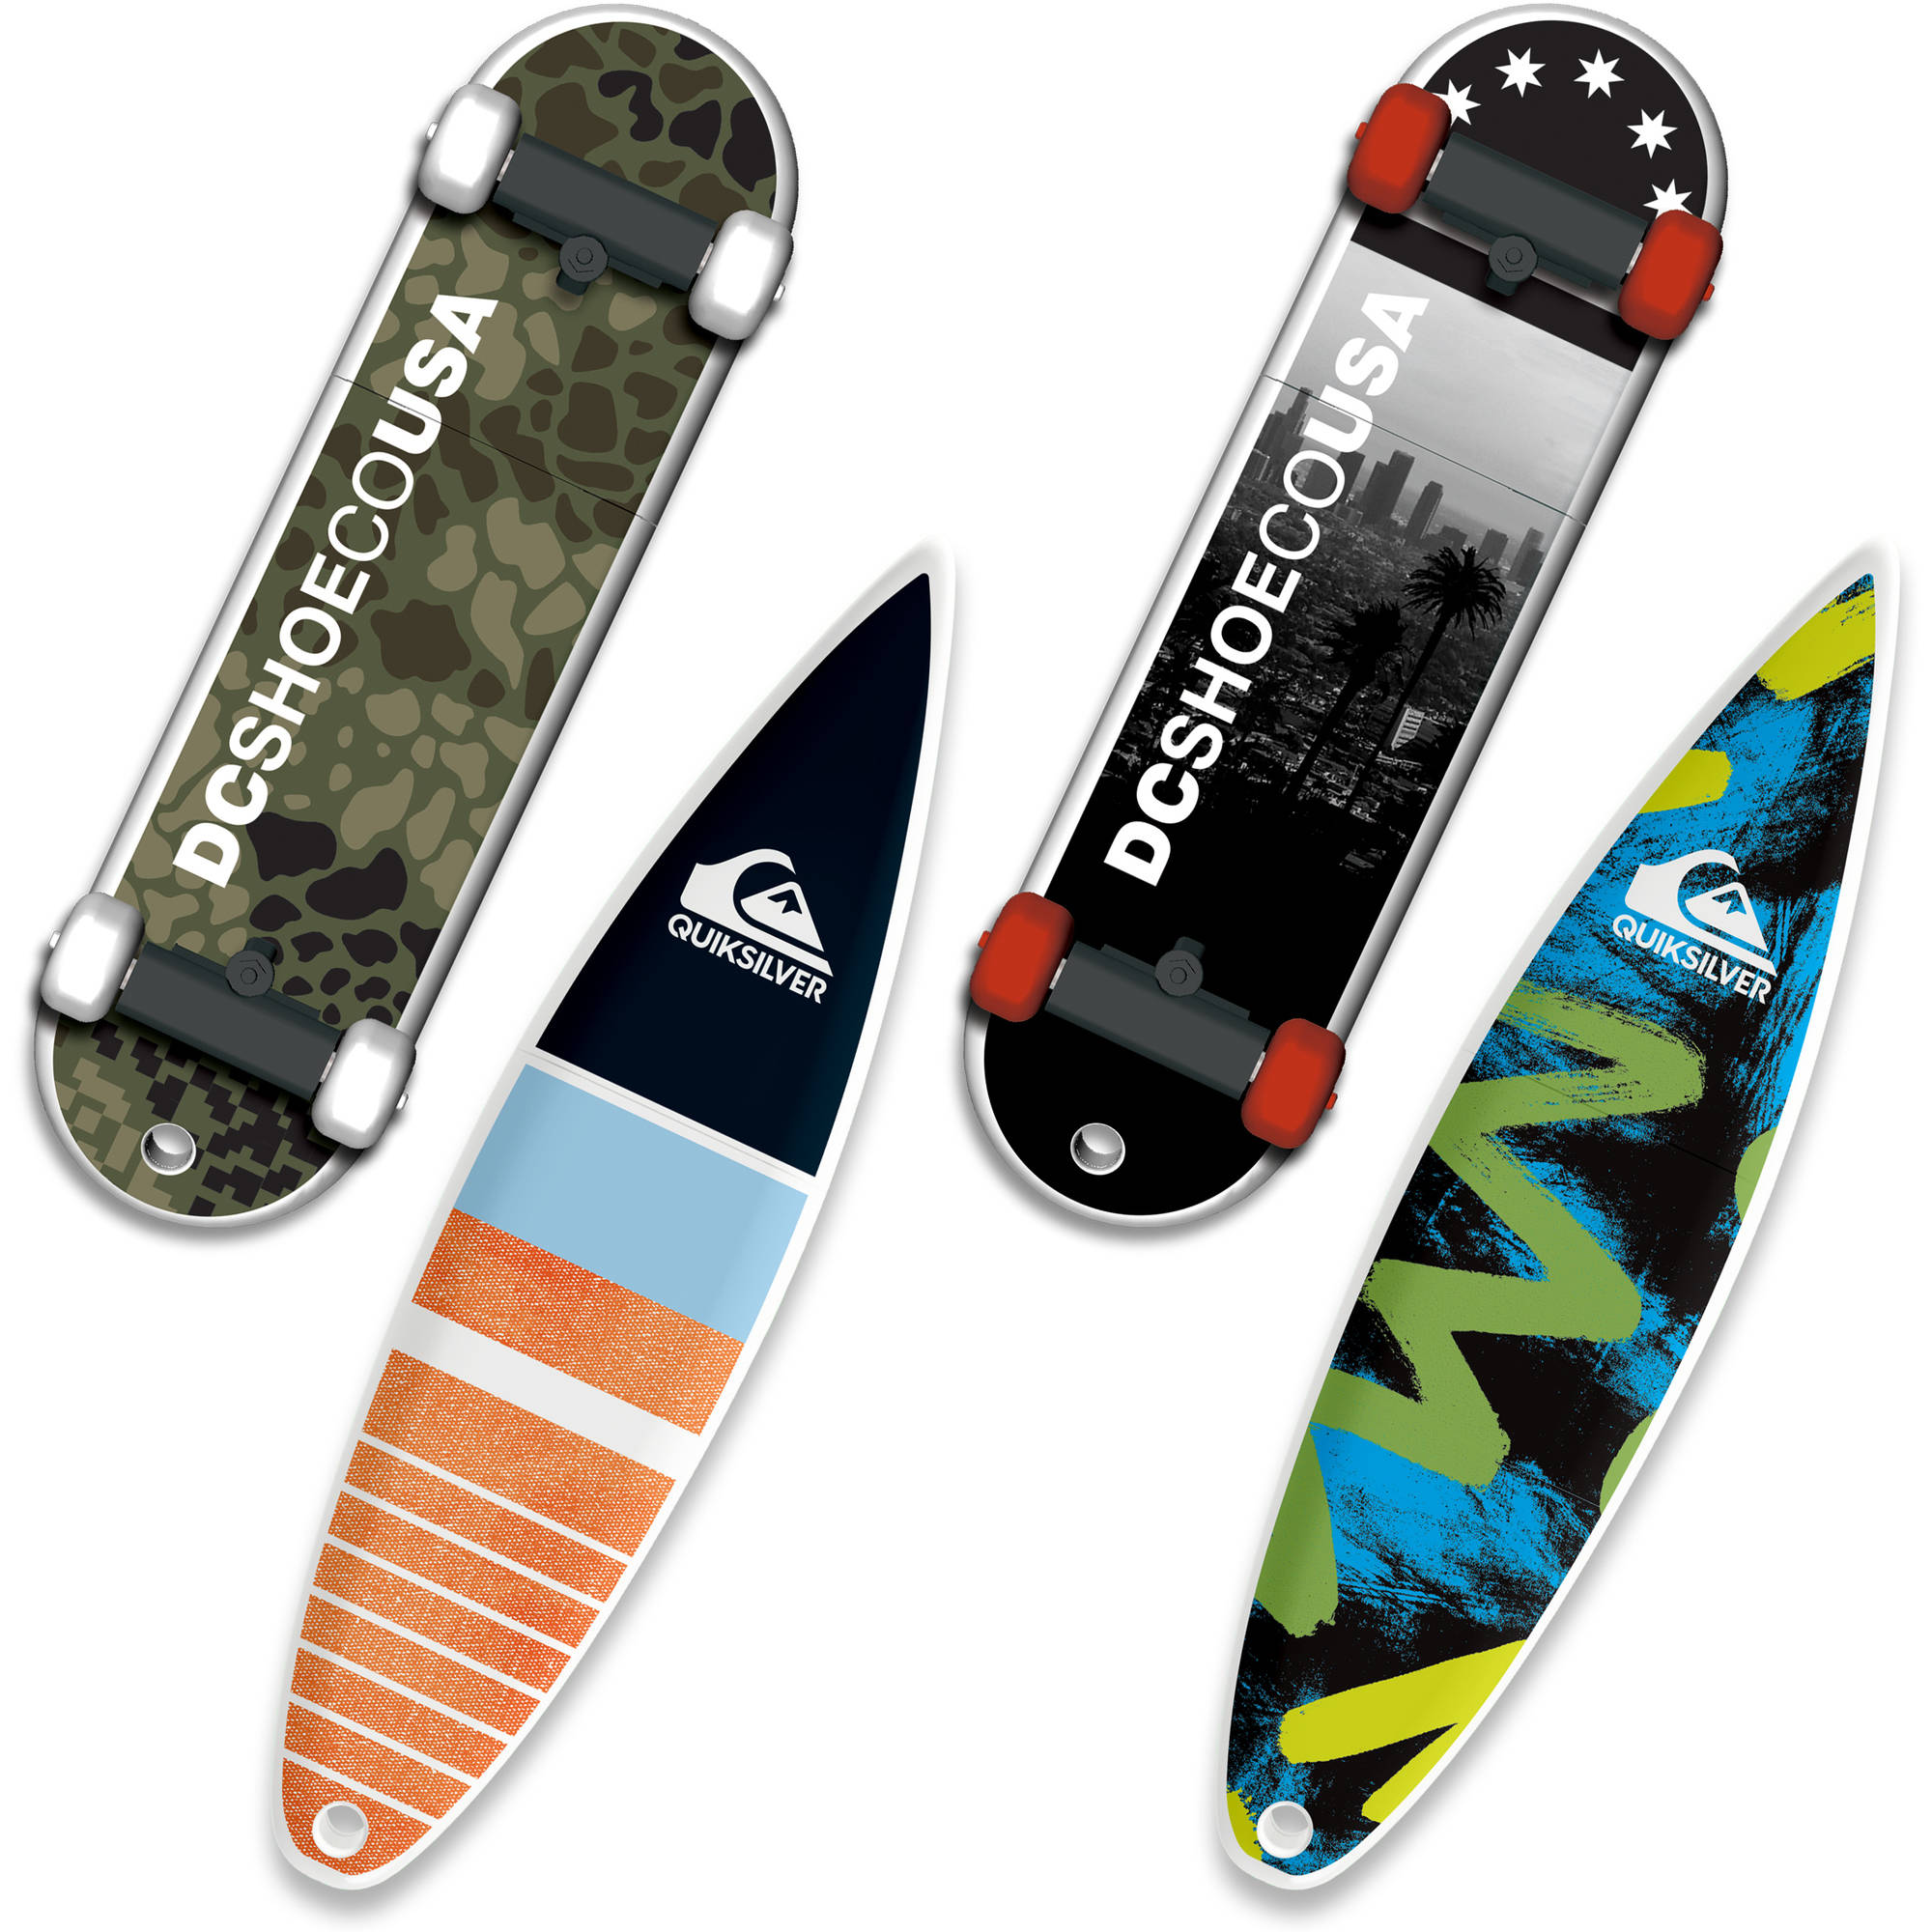 32GB EP ASD USB, DC Shoes SkateDrive and Quiksilver SurfDrive, 4-Pack